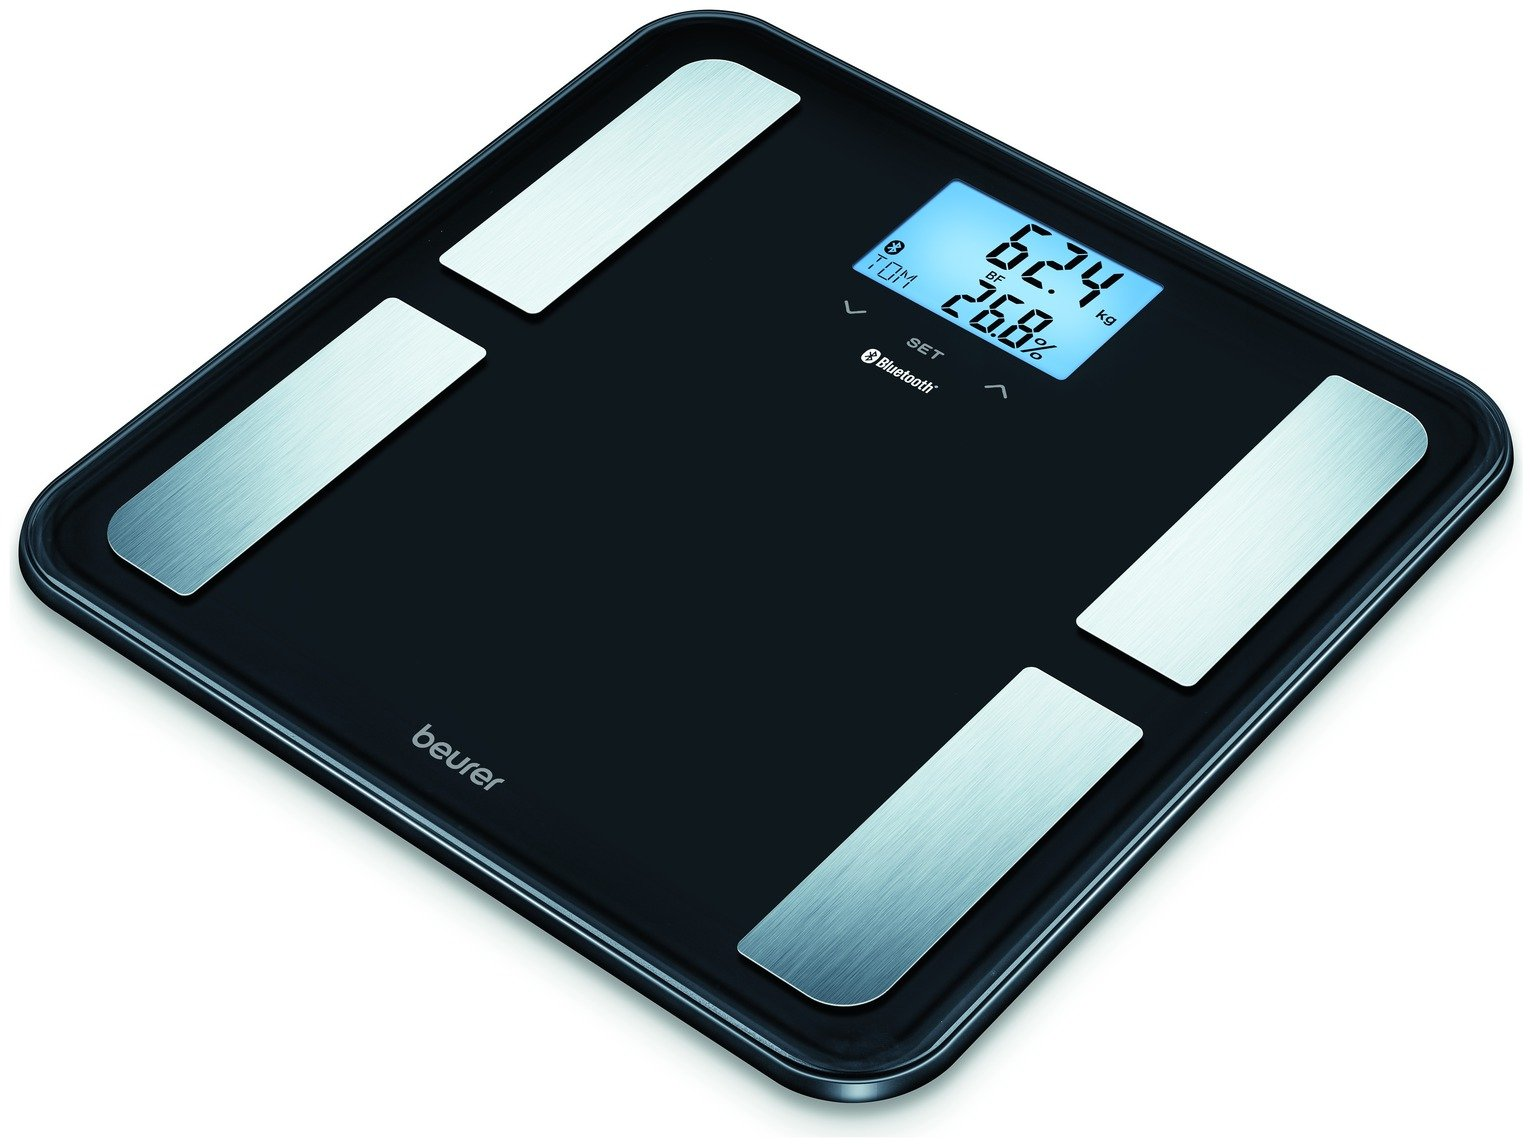 Image of Beurer BF850 Diagnostic Glass Body Analyser Scale - Black